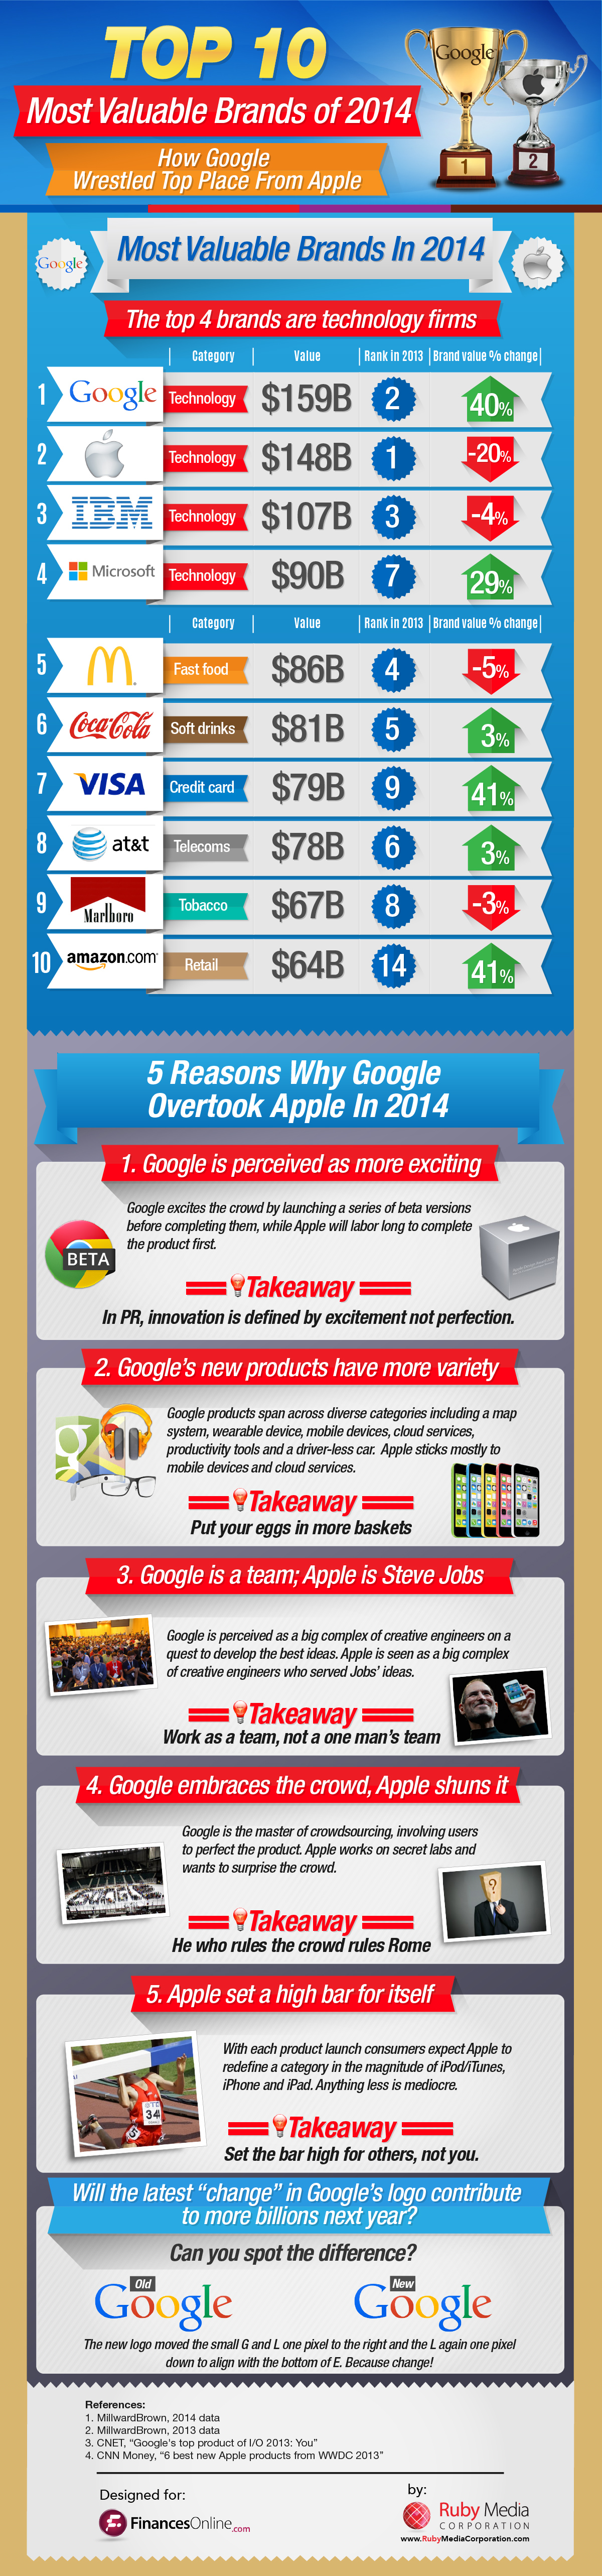 Comparison of the Most Valuable Brands of 2014: How Google Overtook Apple at the No. 1 Spot